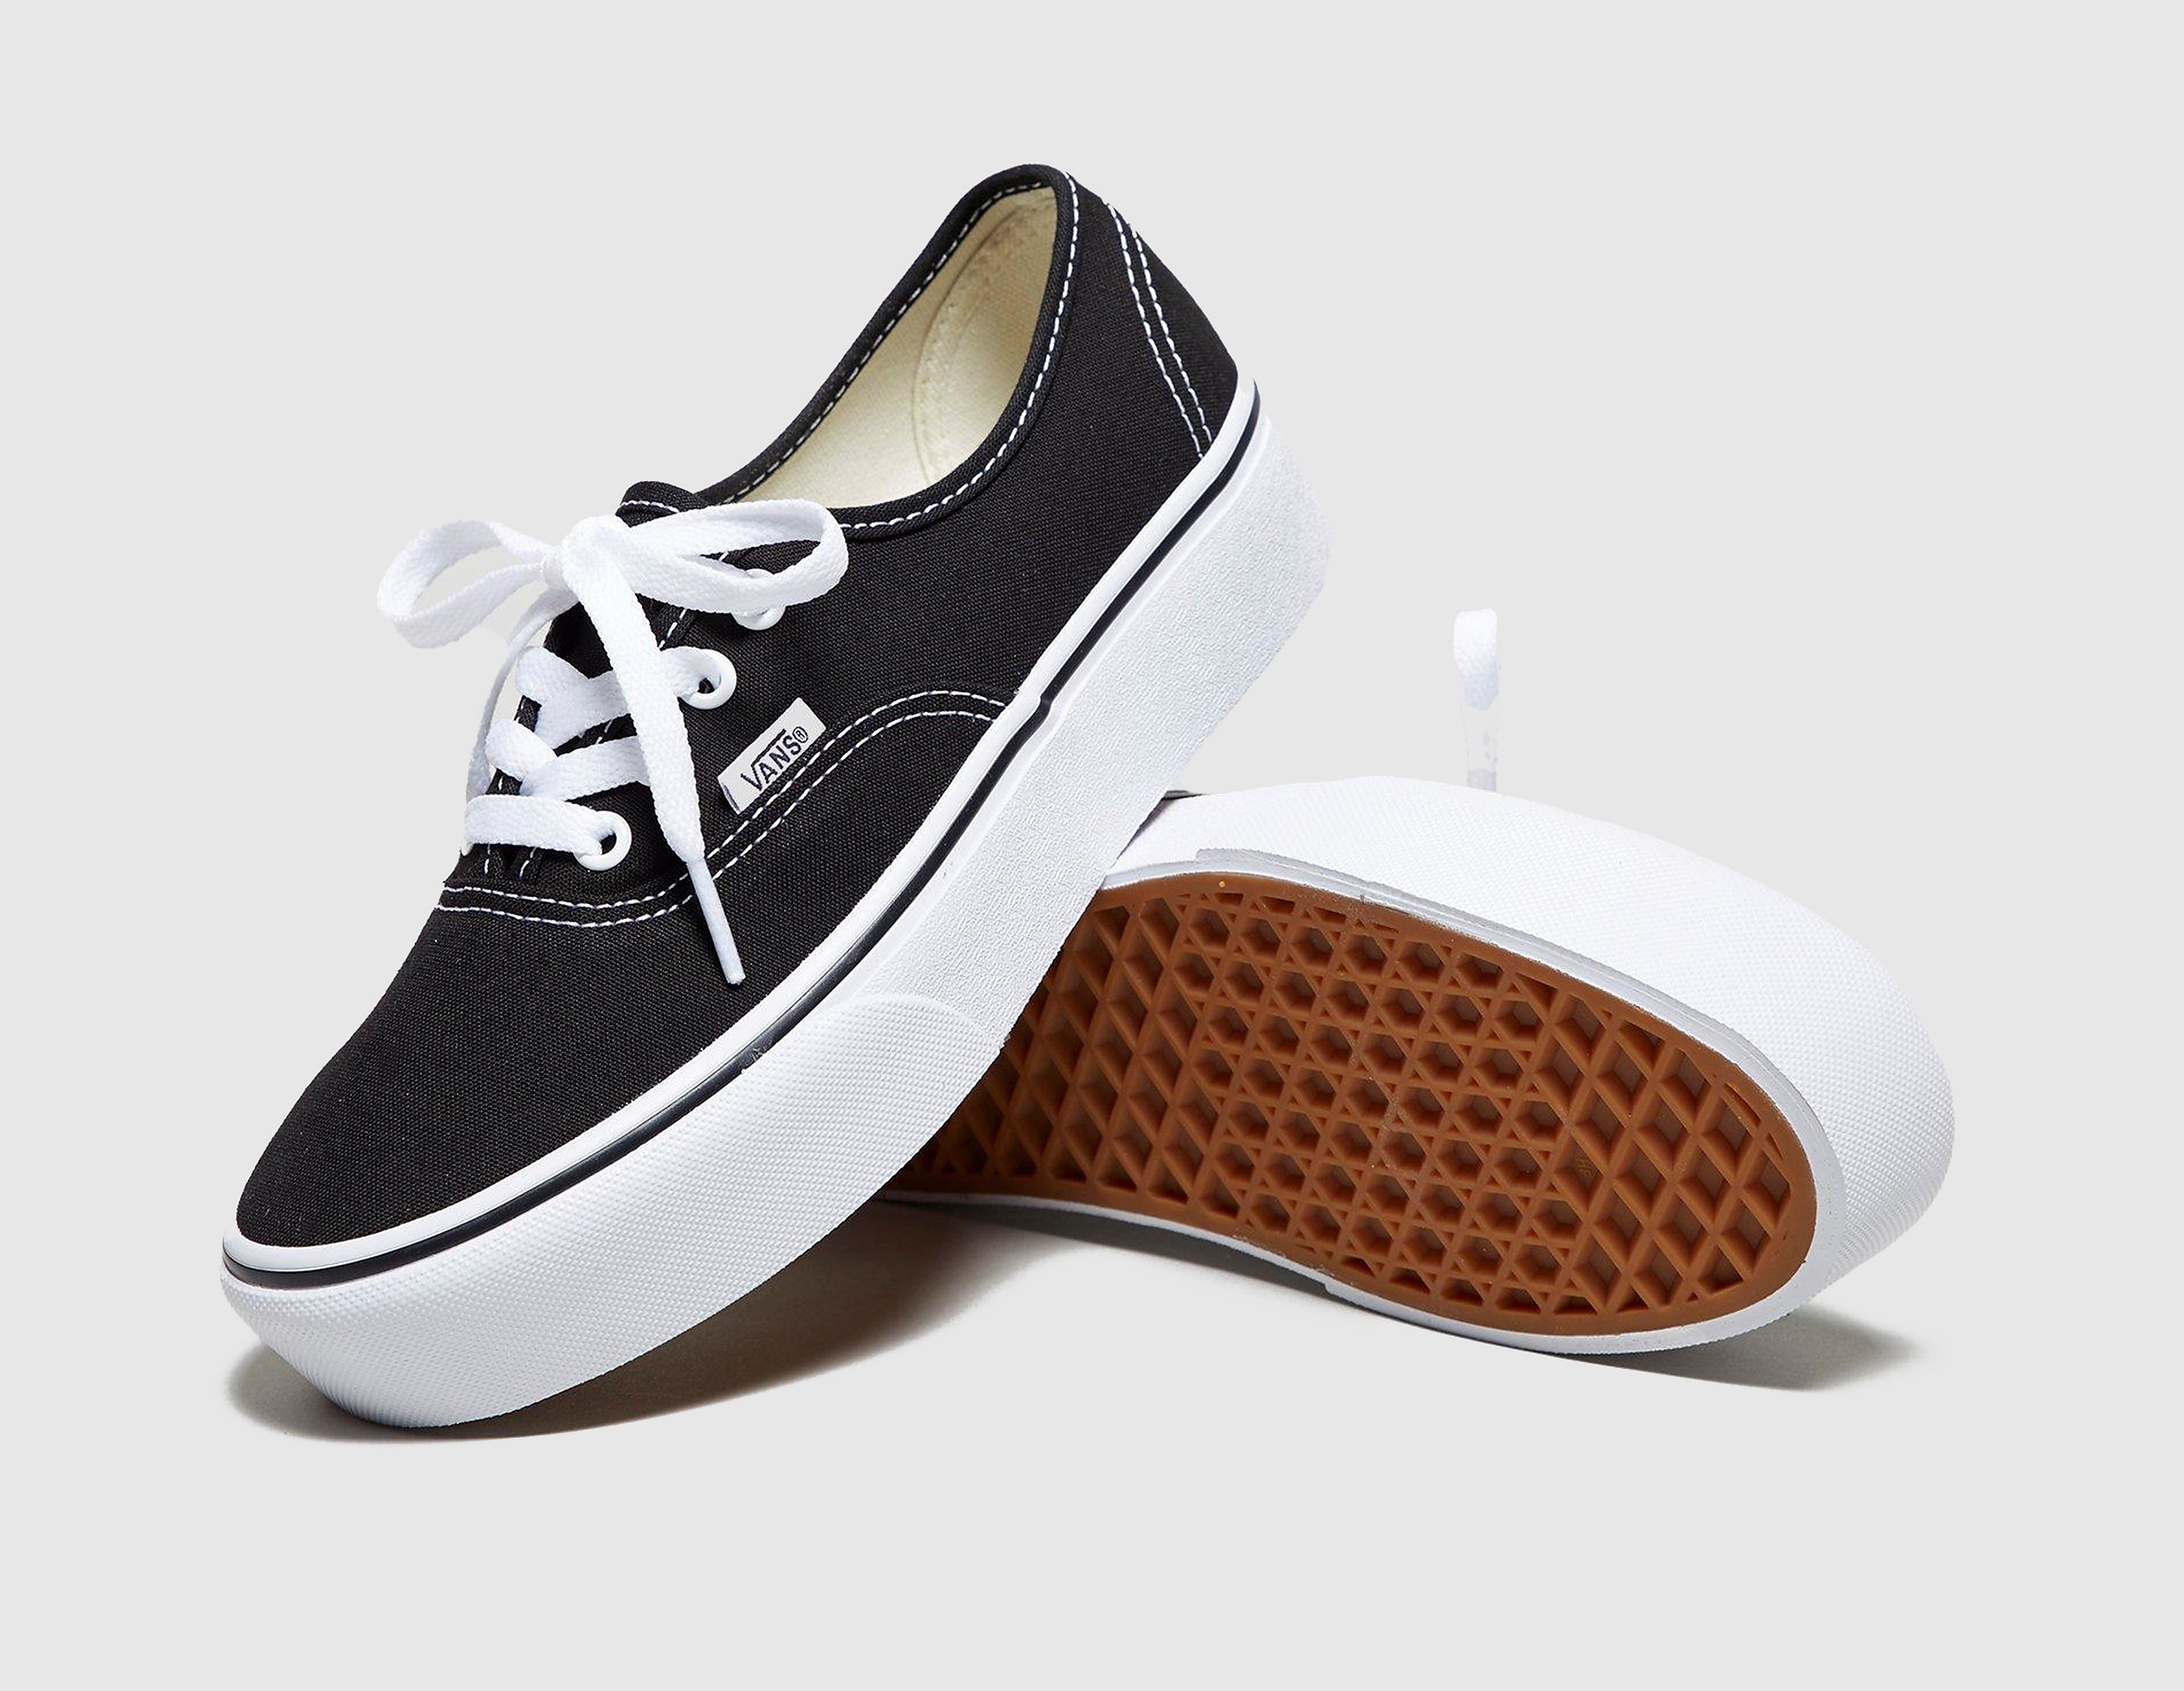 Vans Authetic Platform Women's